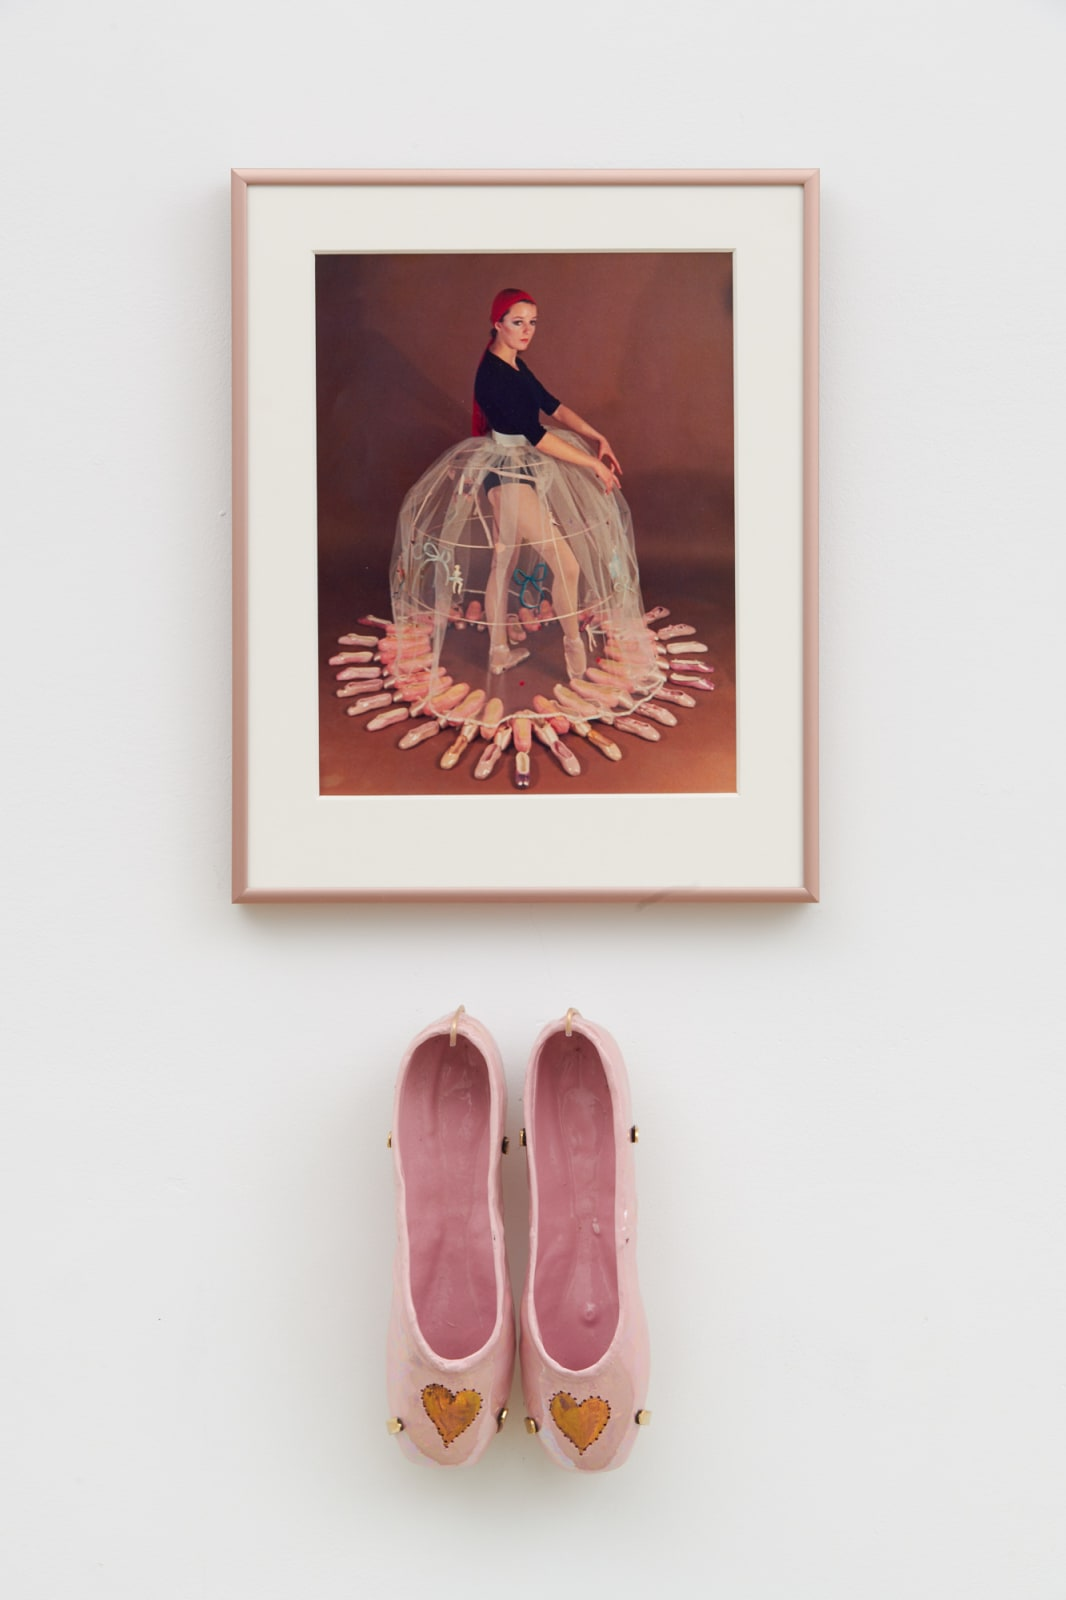 Rose ENGLISH, Study for a Divertissement: Diana with crinoline and pointe shoes I, 1973